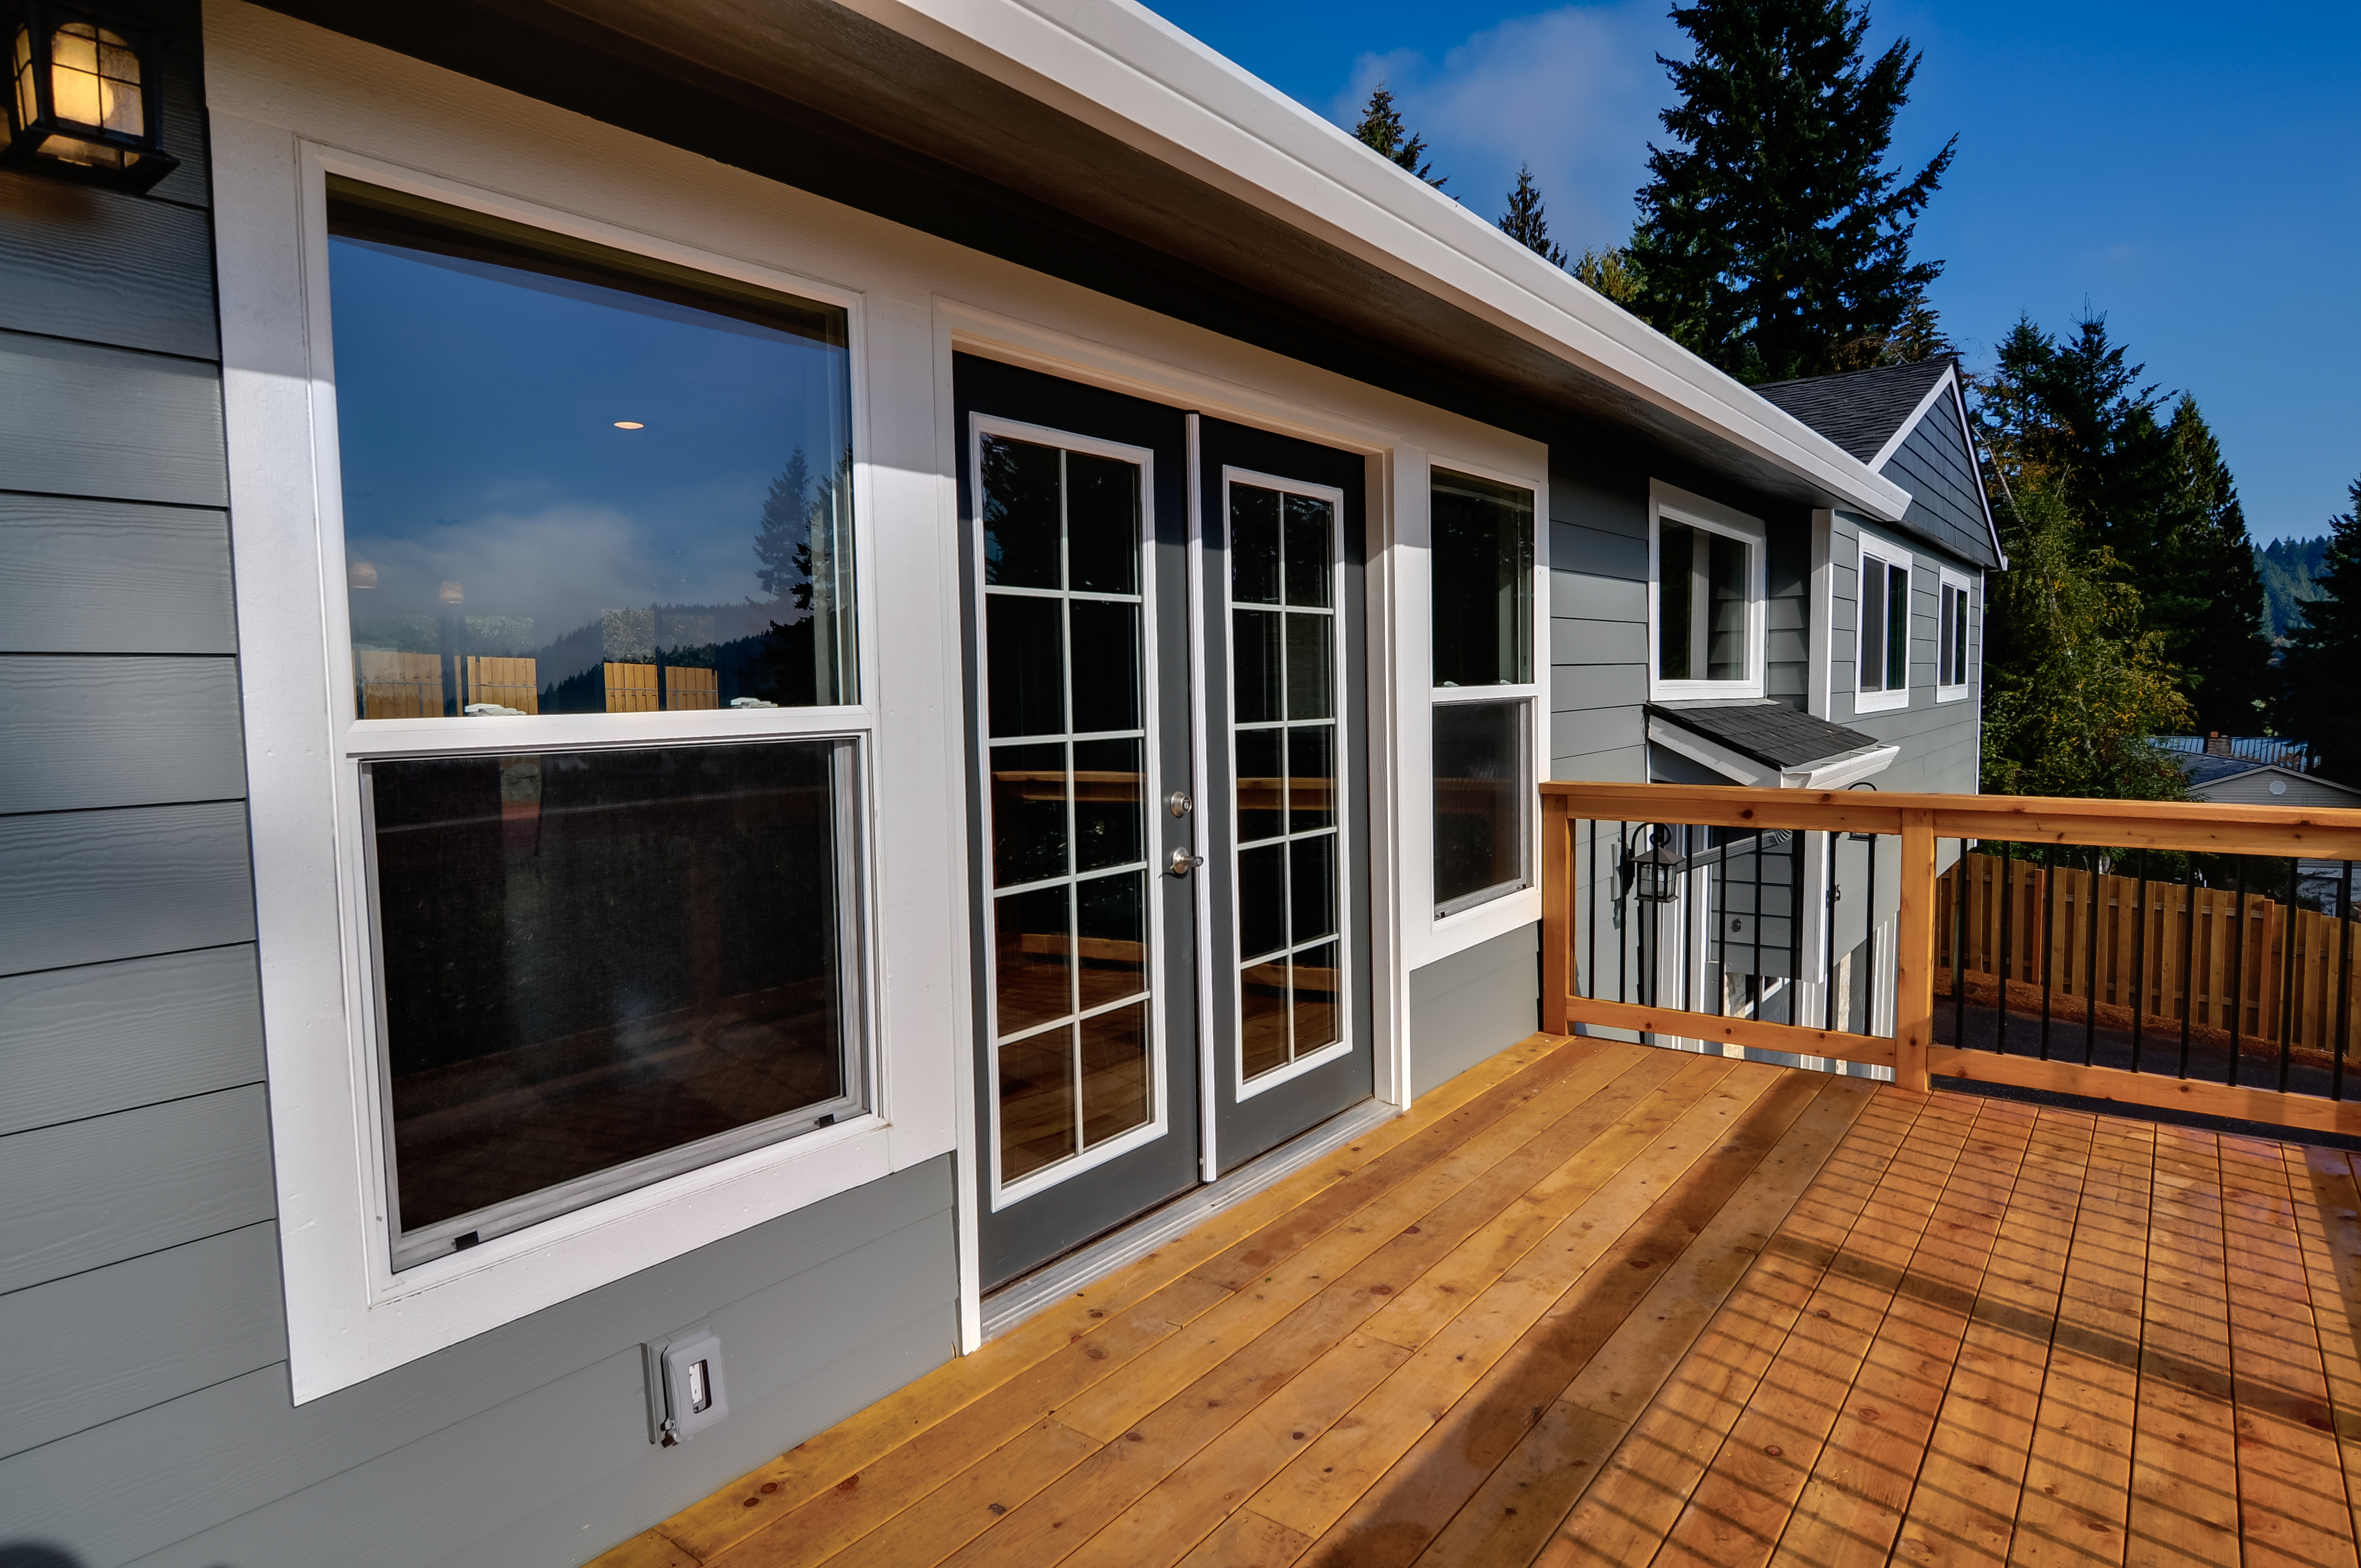 Exterior painting portland painting contractor - Exterior house painting contractors ...